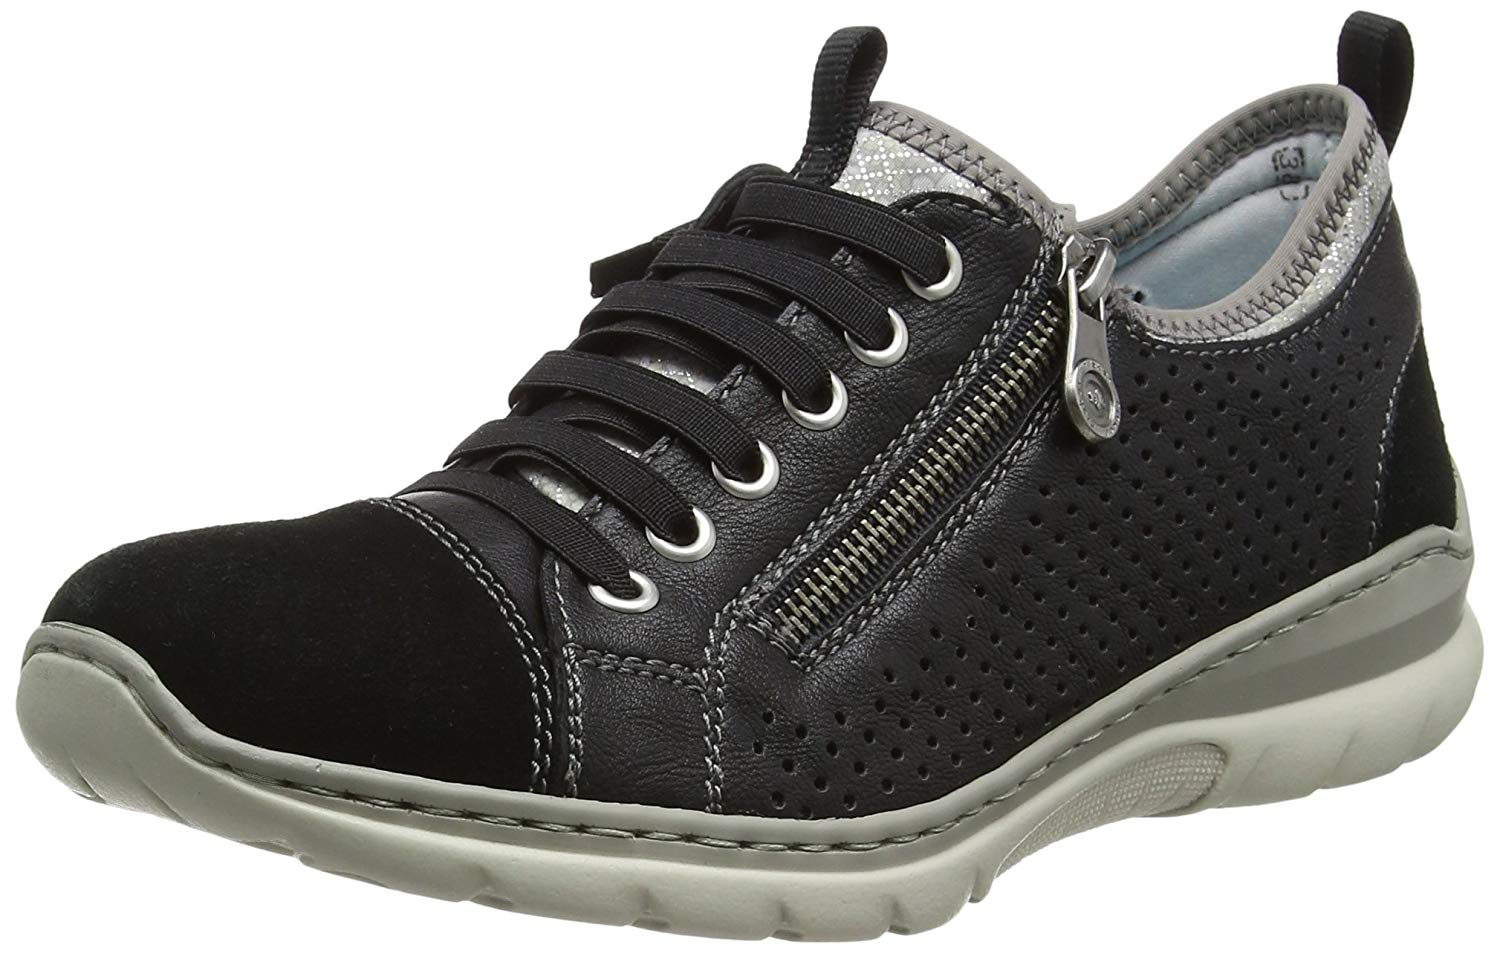 Rieker Women's Lace Up Trainer Sneaker Shoe (L3277-01)